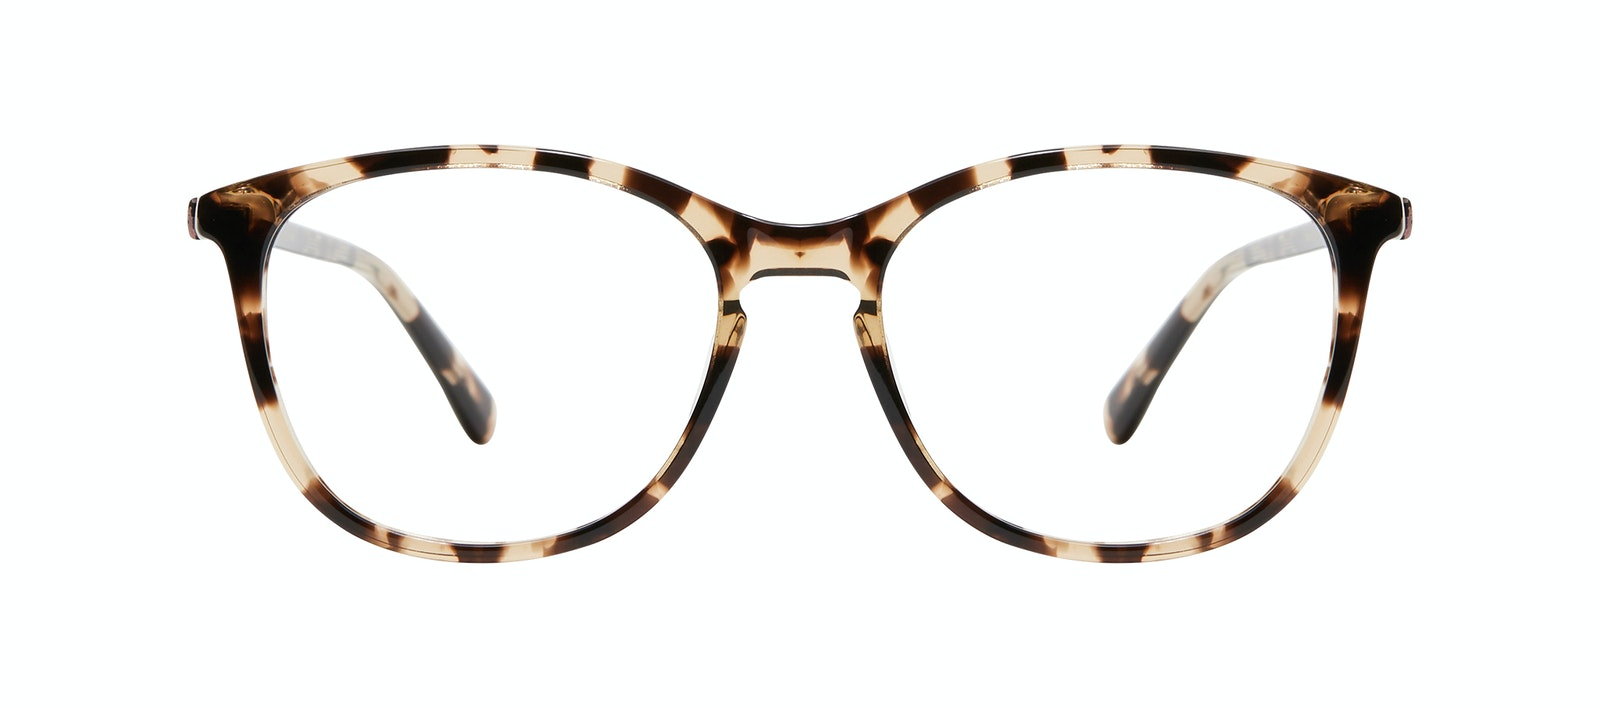 Affordable Fashion Glasses Rectangle Square Round Eyeglasses Women Nadine M Snake Skin Front